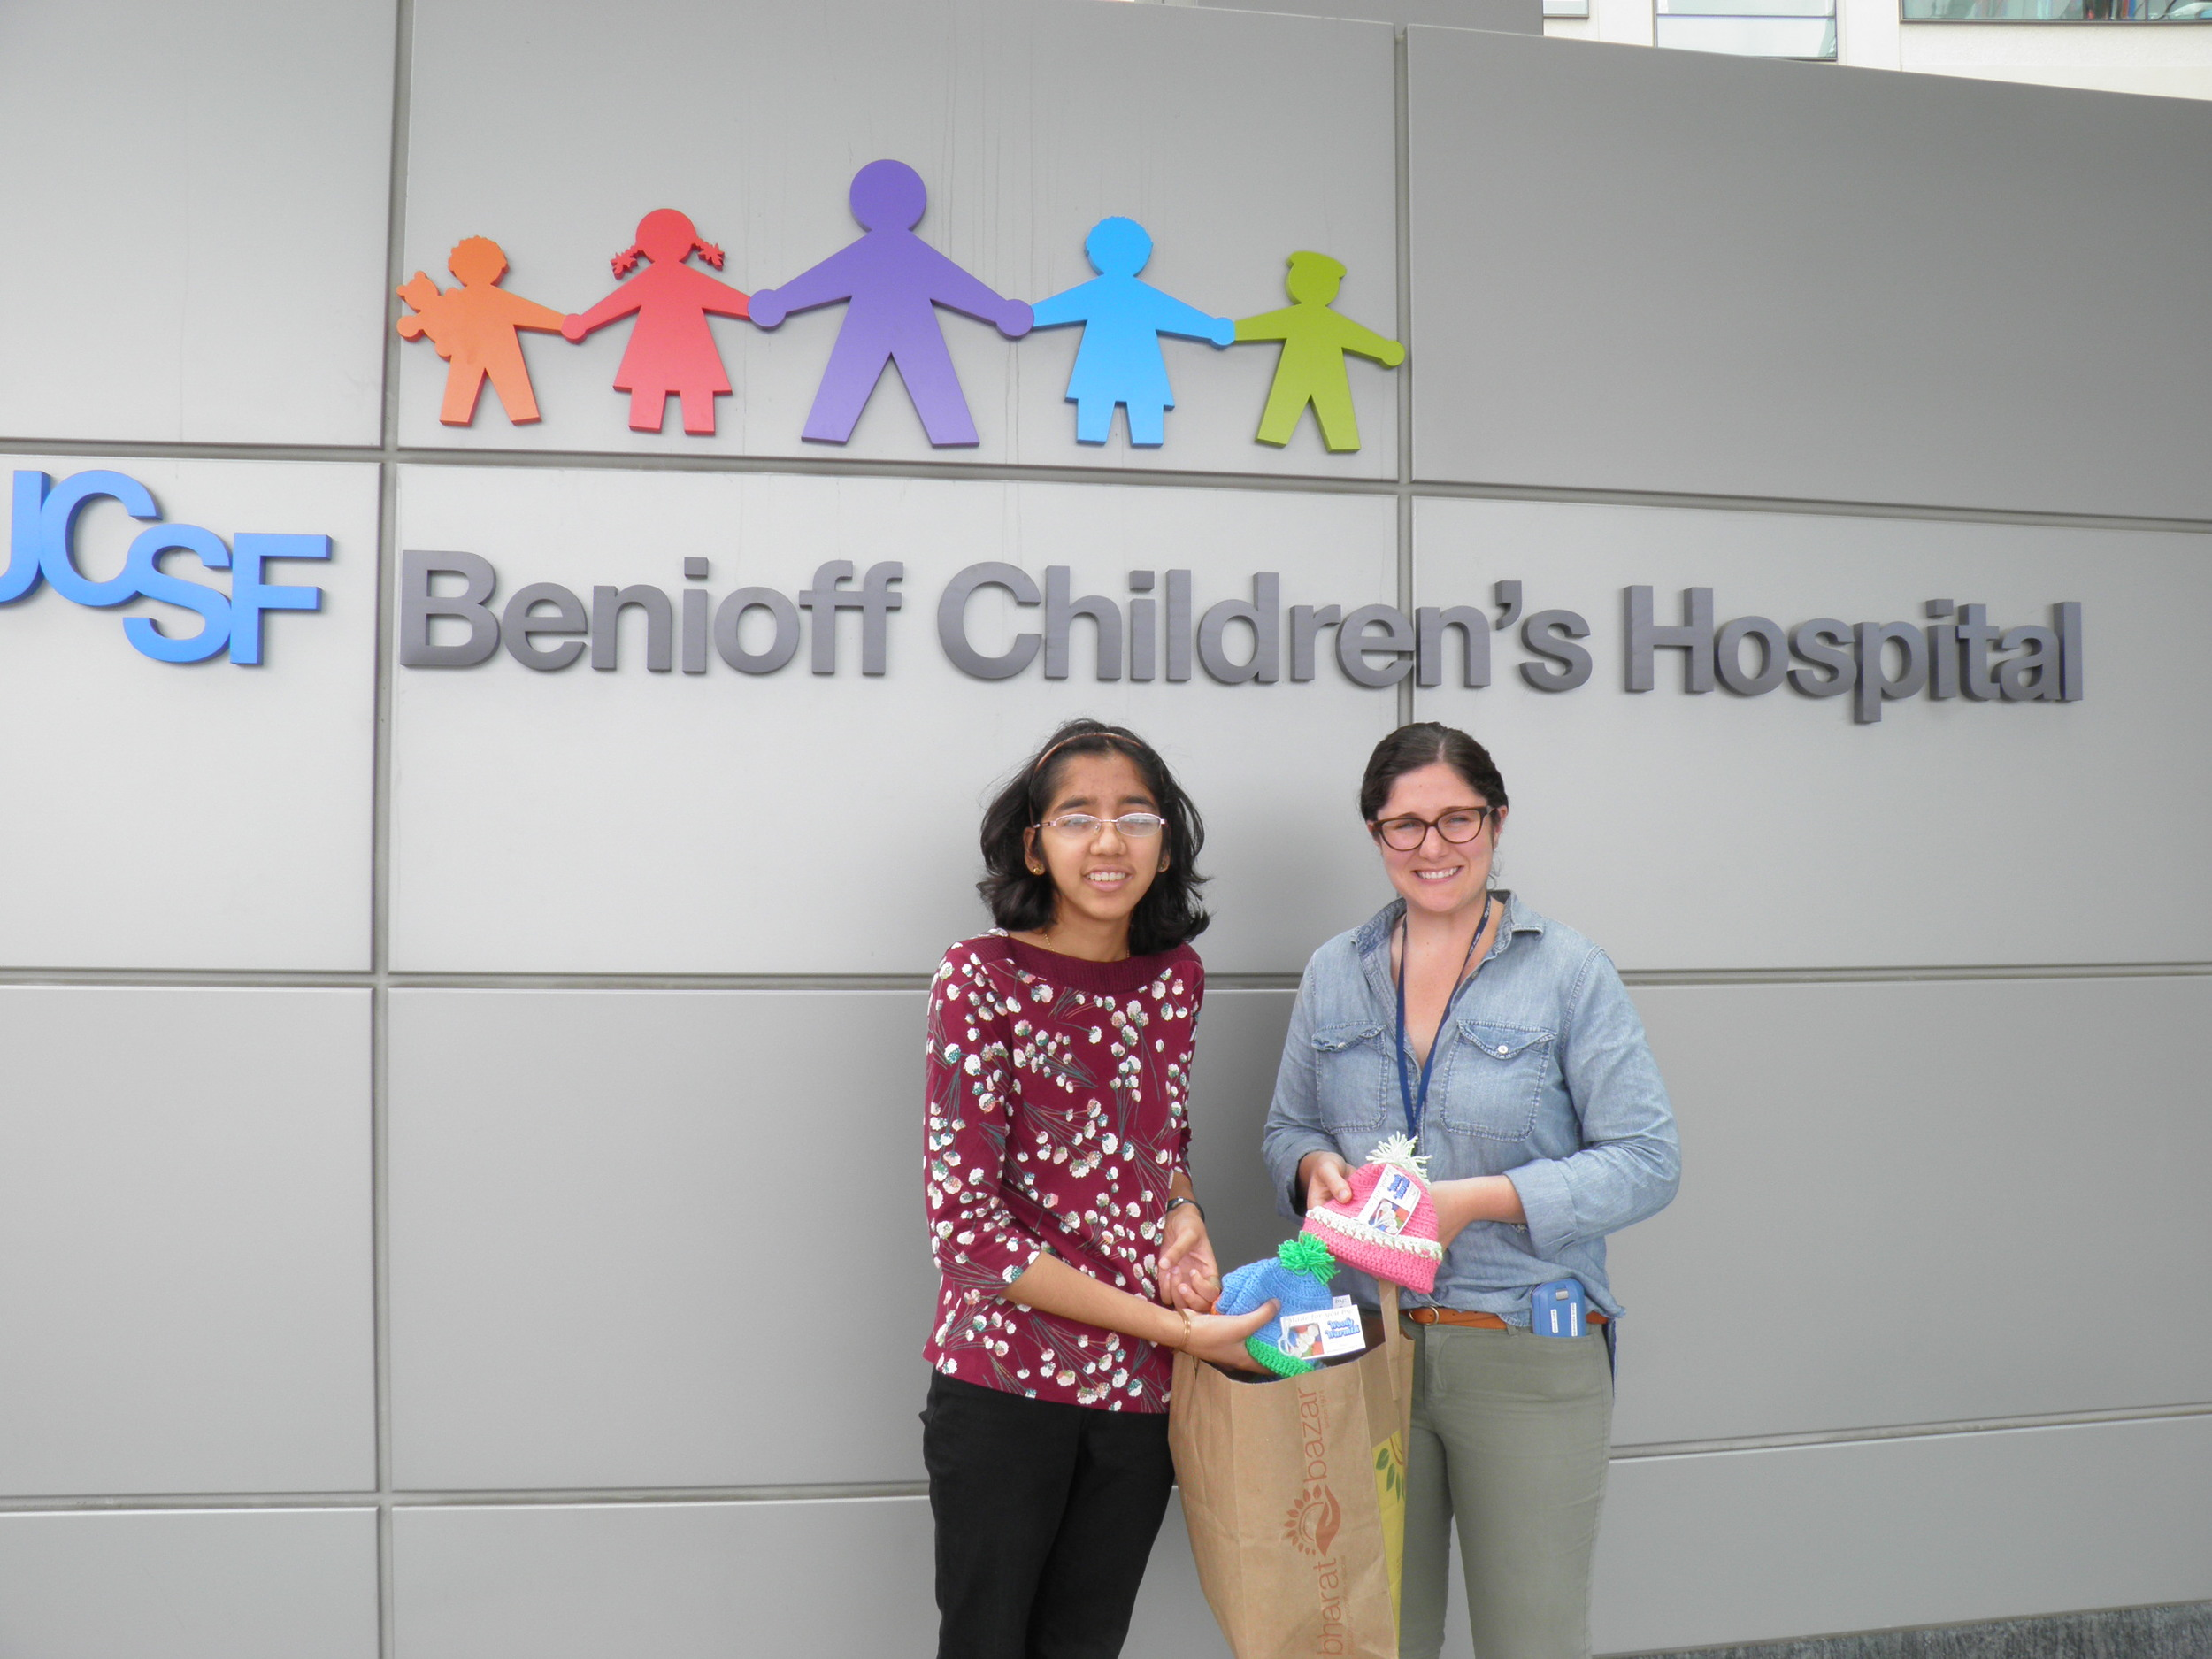 With Ms. Ashely Goliti, Child Life Services, UCSF Benioff Children's Hospital